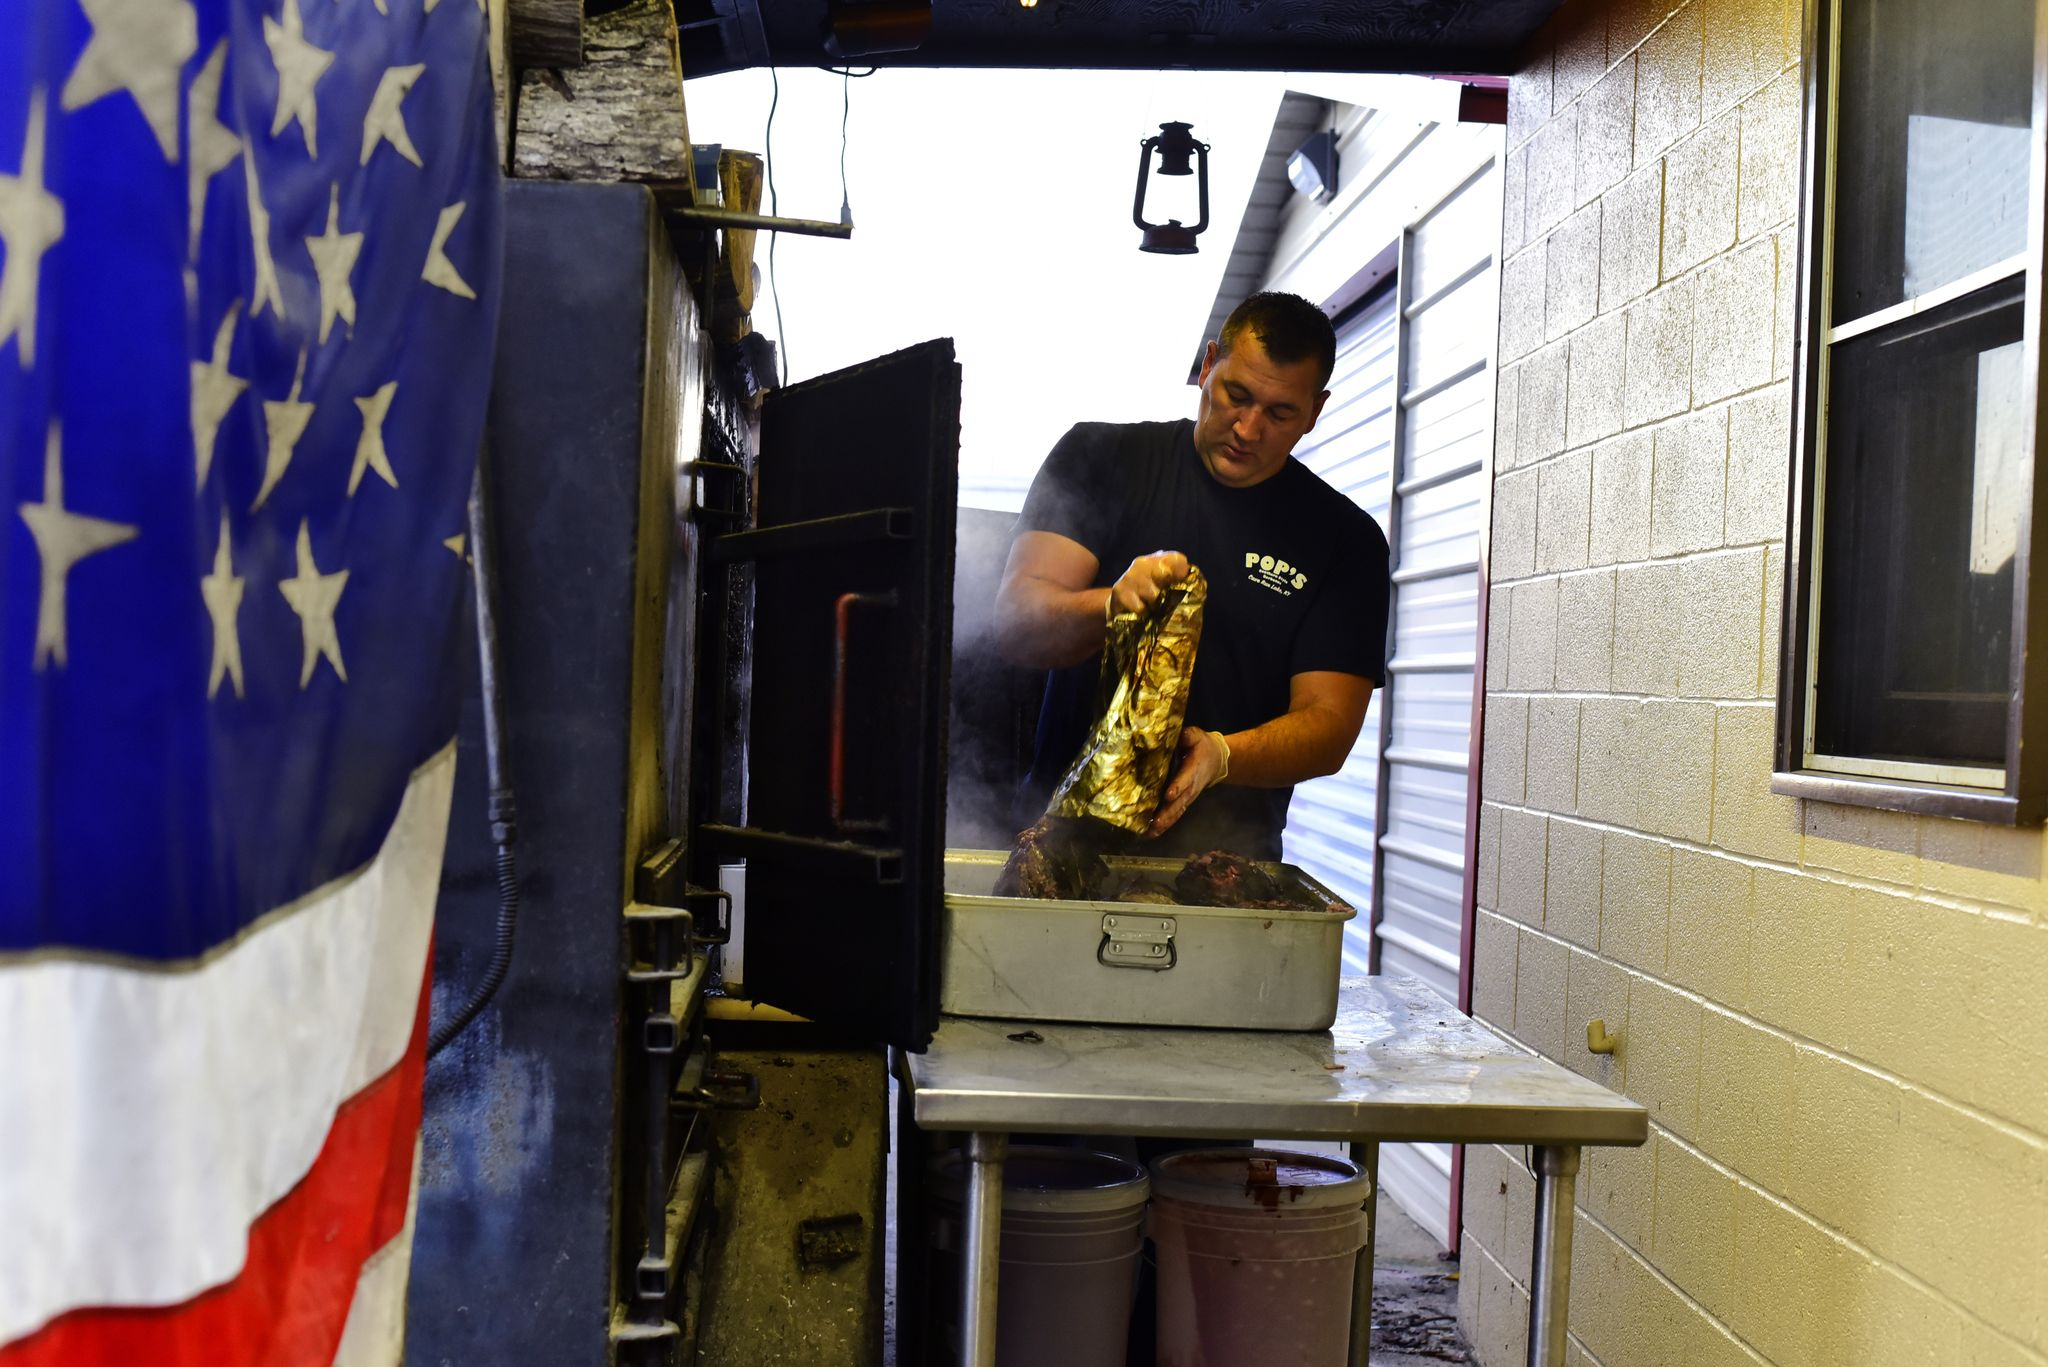 Pop's owner, Adam Ferguson opened eight years ago. Locals didn't think his business idea would work, but Adam has made an impact on the community in Morehead. The smoker runs around the clock. Some meat is wrapped in foil, others are laid on the open grill, as they are smoked for up to 22 hours at a time. Adam uses this method to keep the smokey flavor in his meats.